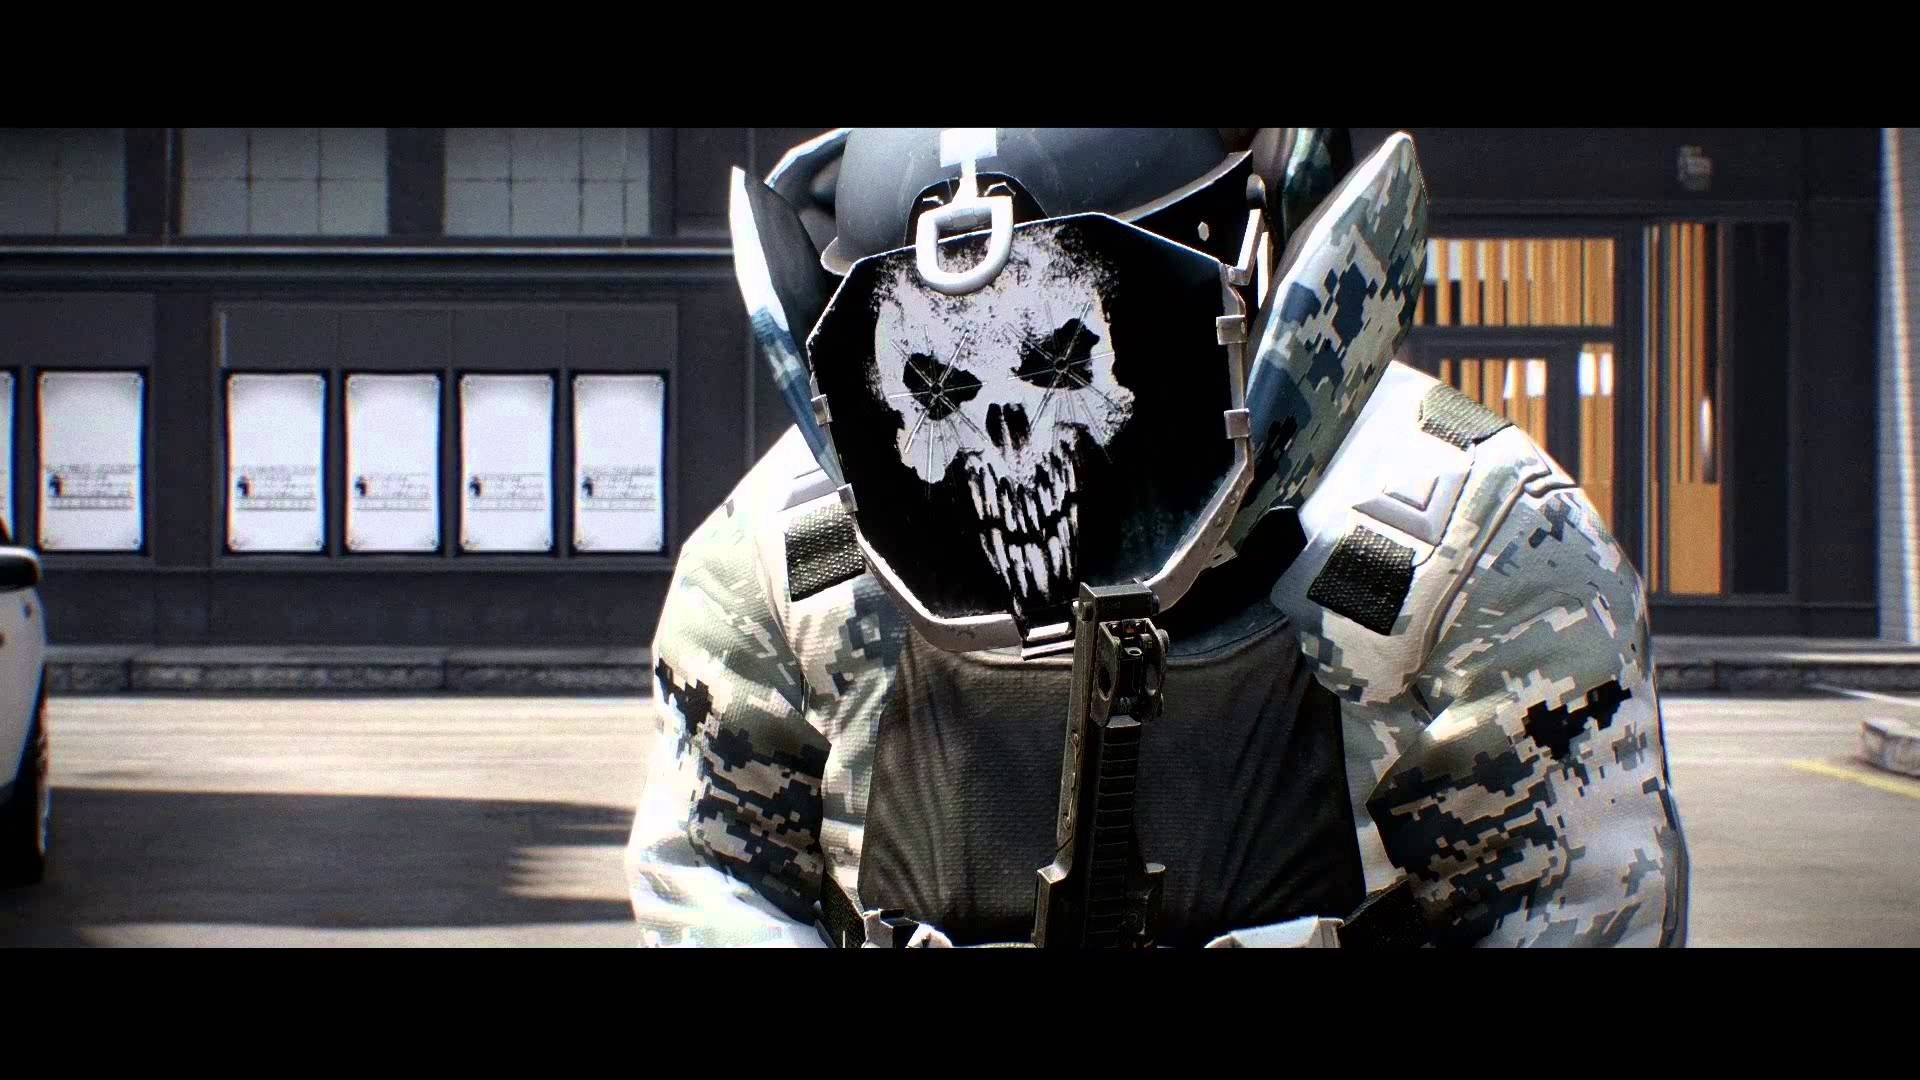 PAYDAY Action Co Op Shooter Tactical Stealth Crime Wallpaper